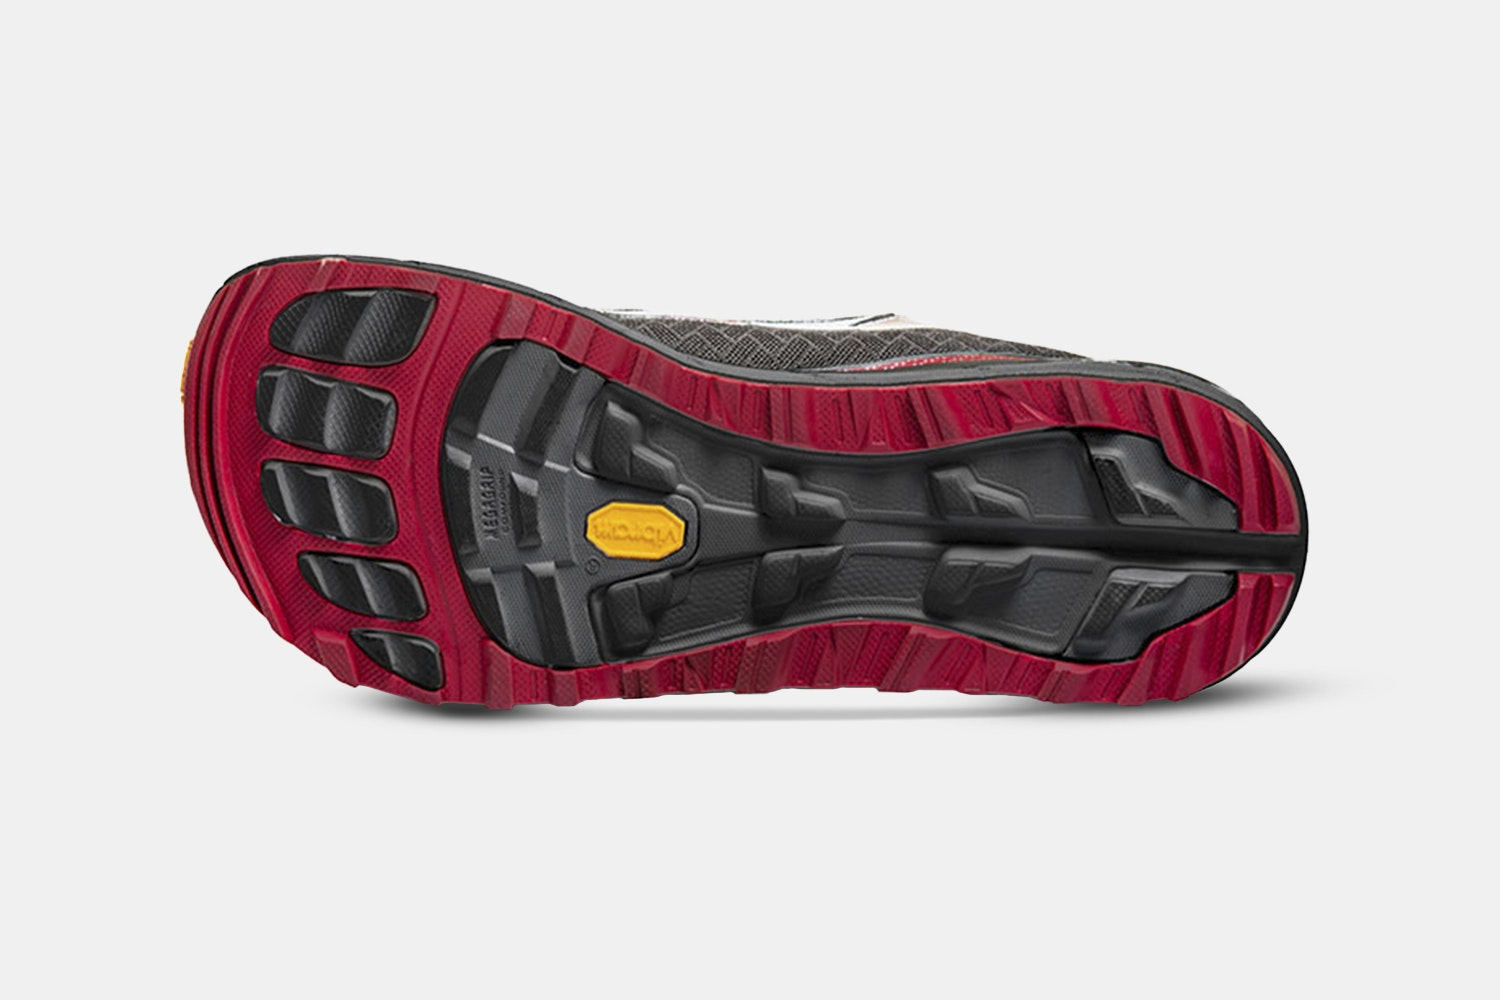 Altra Olympus 2.0 Running Shoes